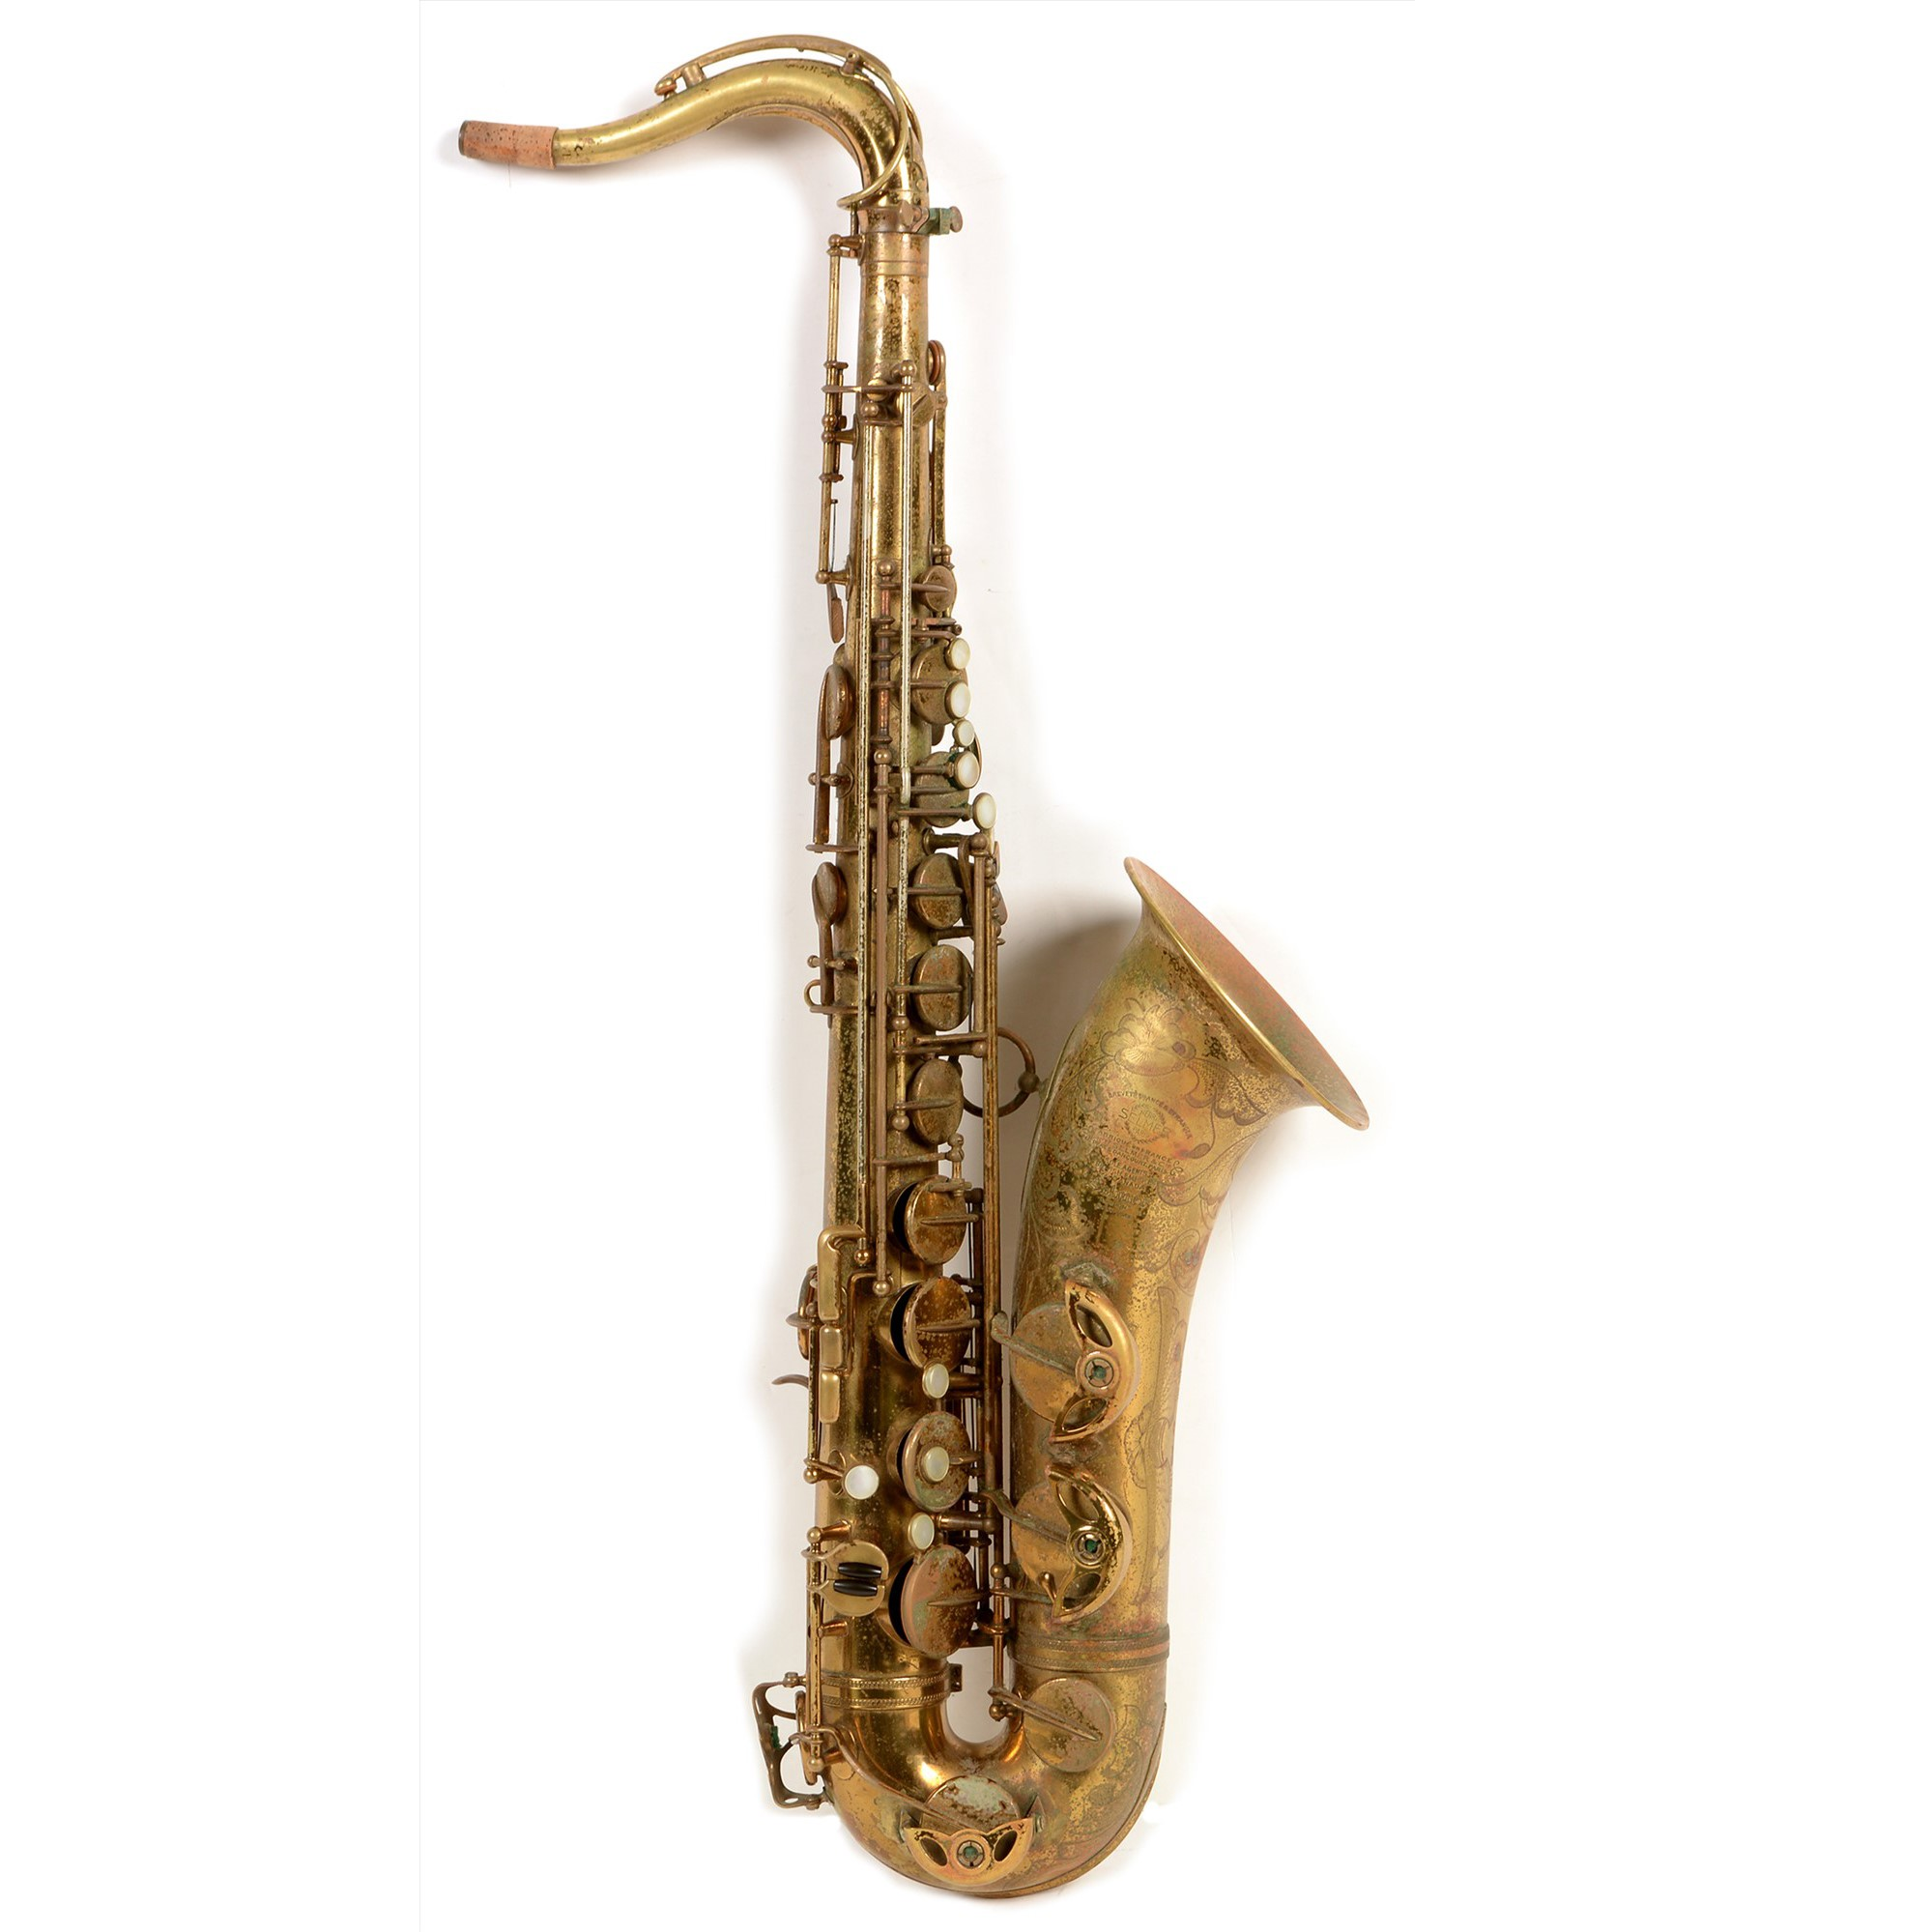 Saxophone Collection Sold at Auction